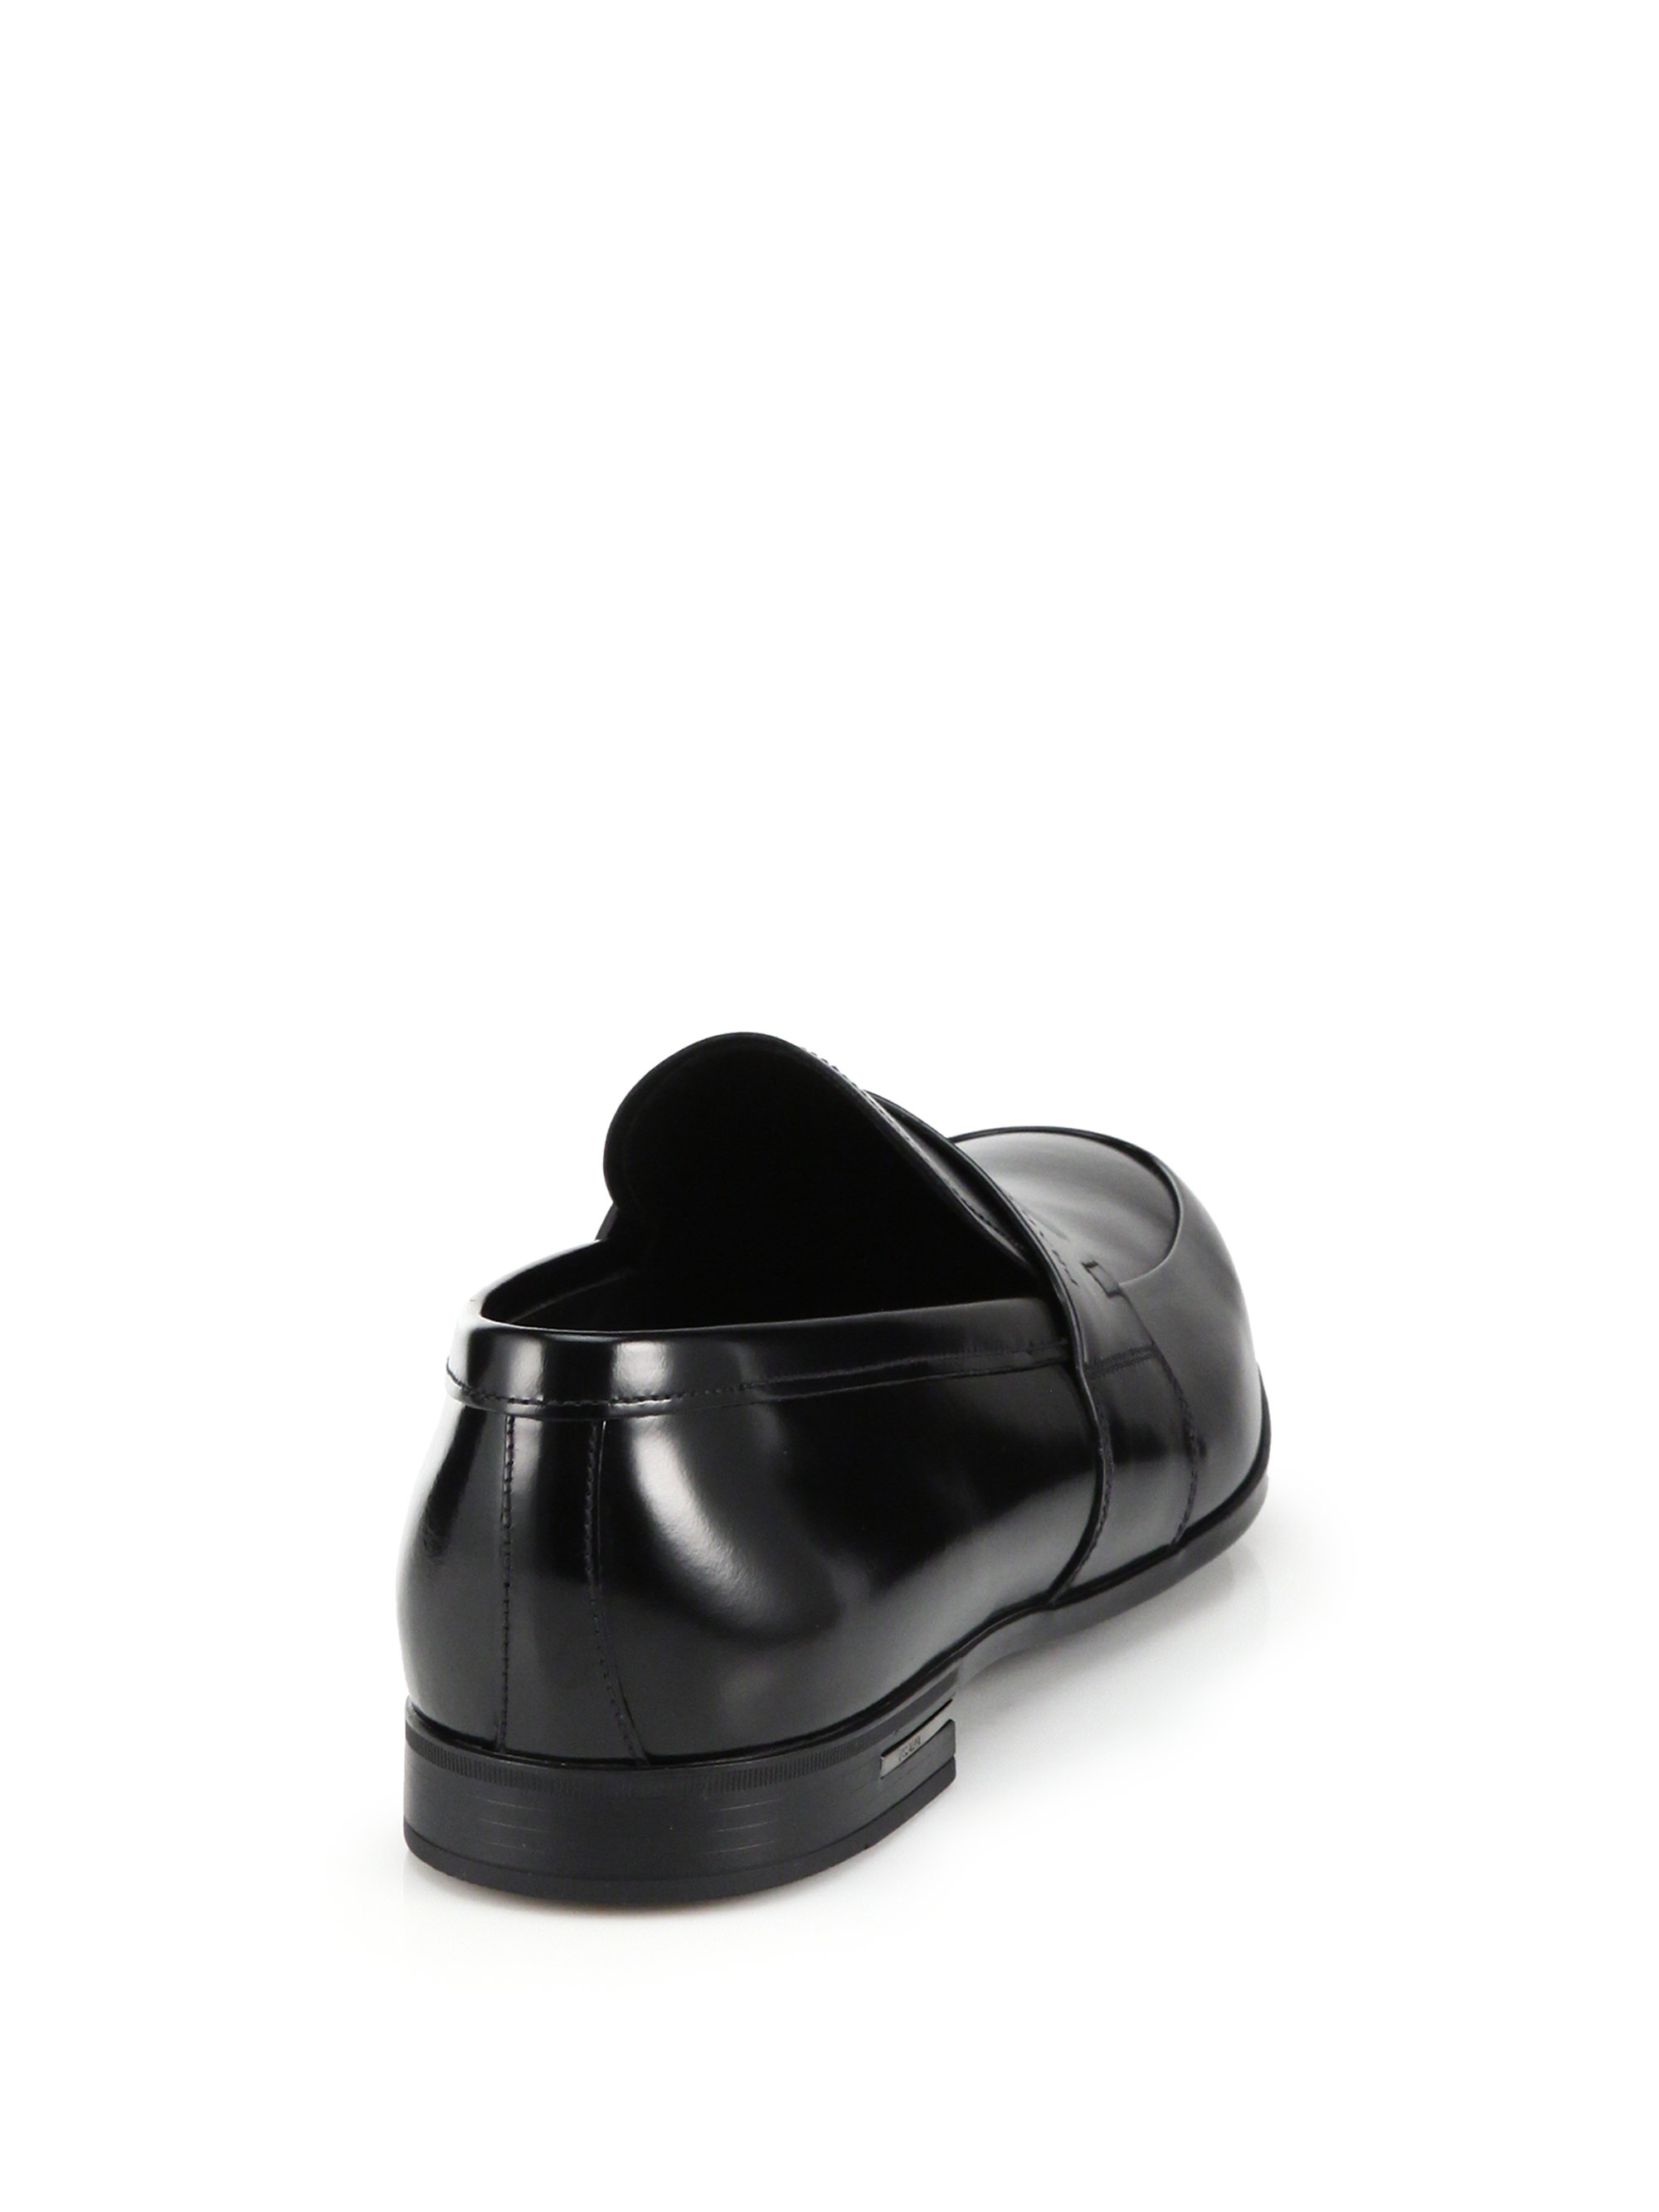 how much is the prada saffiano - Prada Spazzolato Leather Penny Loafers in Black for Men | Lyst